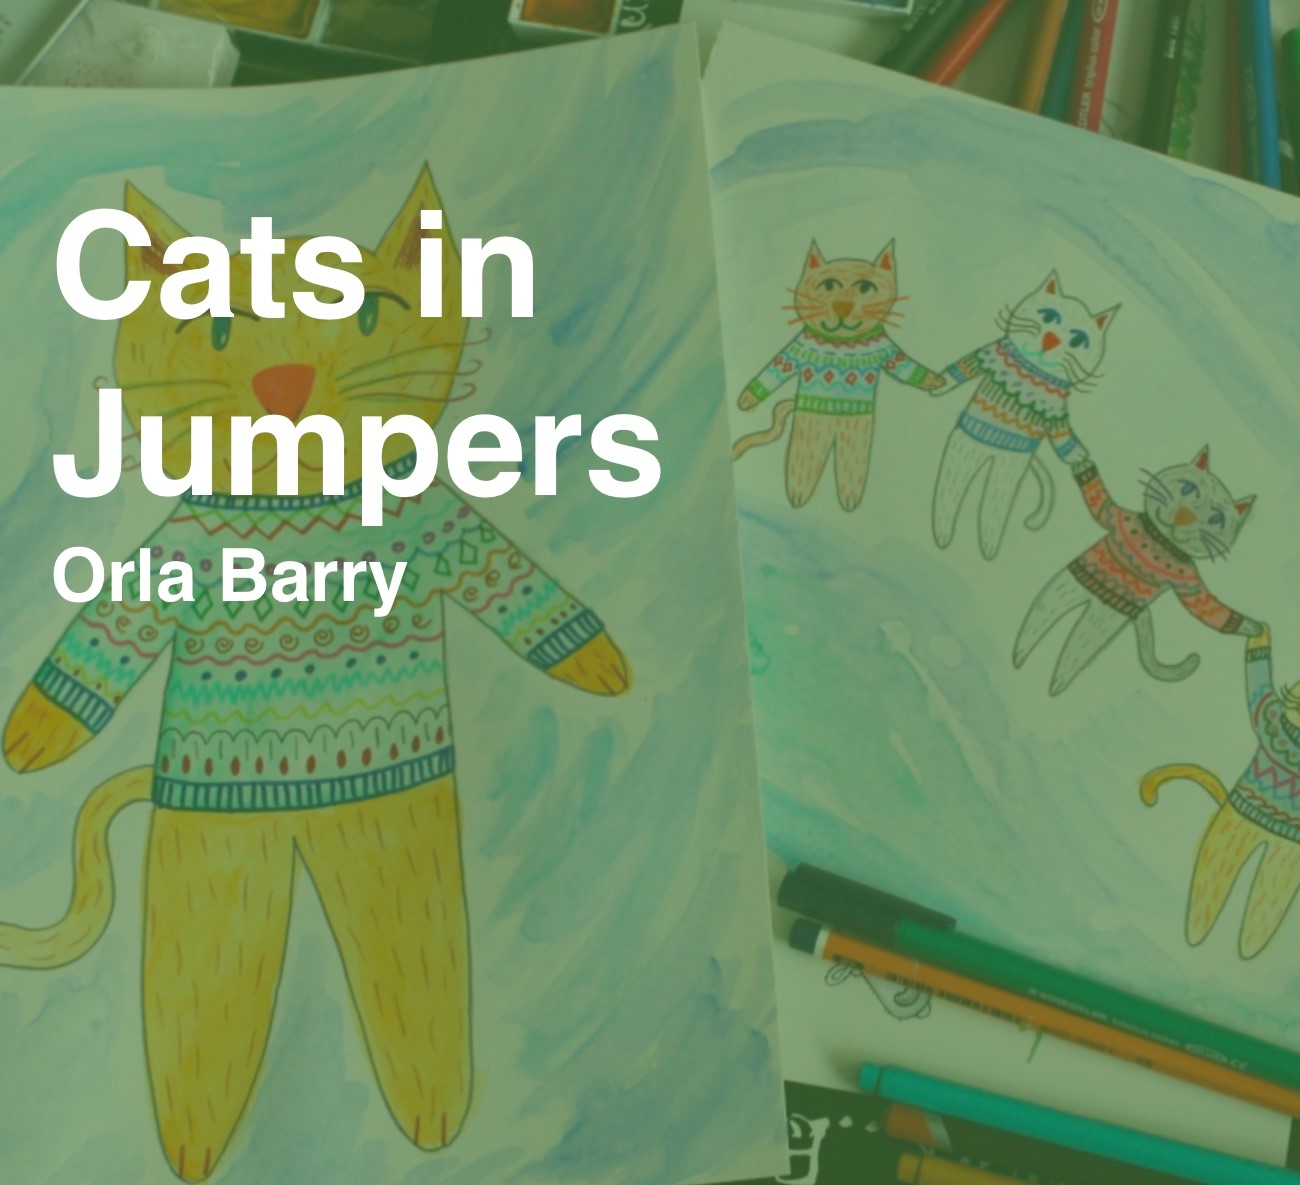 Friday Art Class- Cats in Jumpers